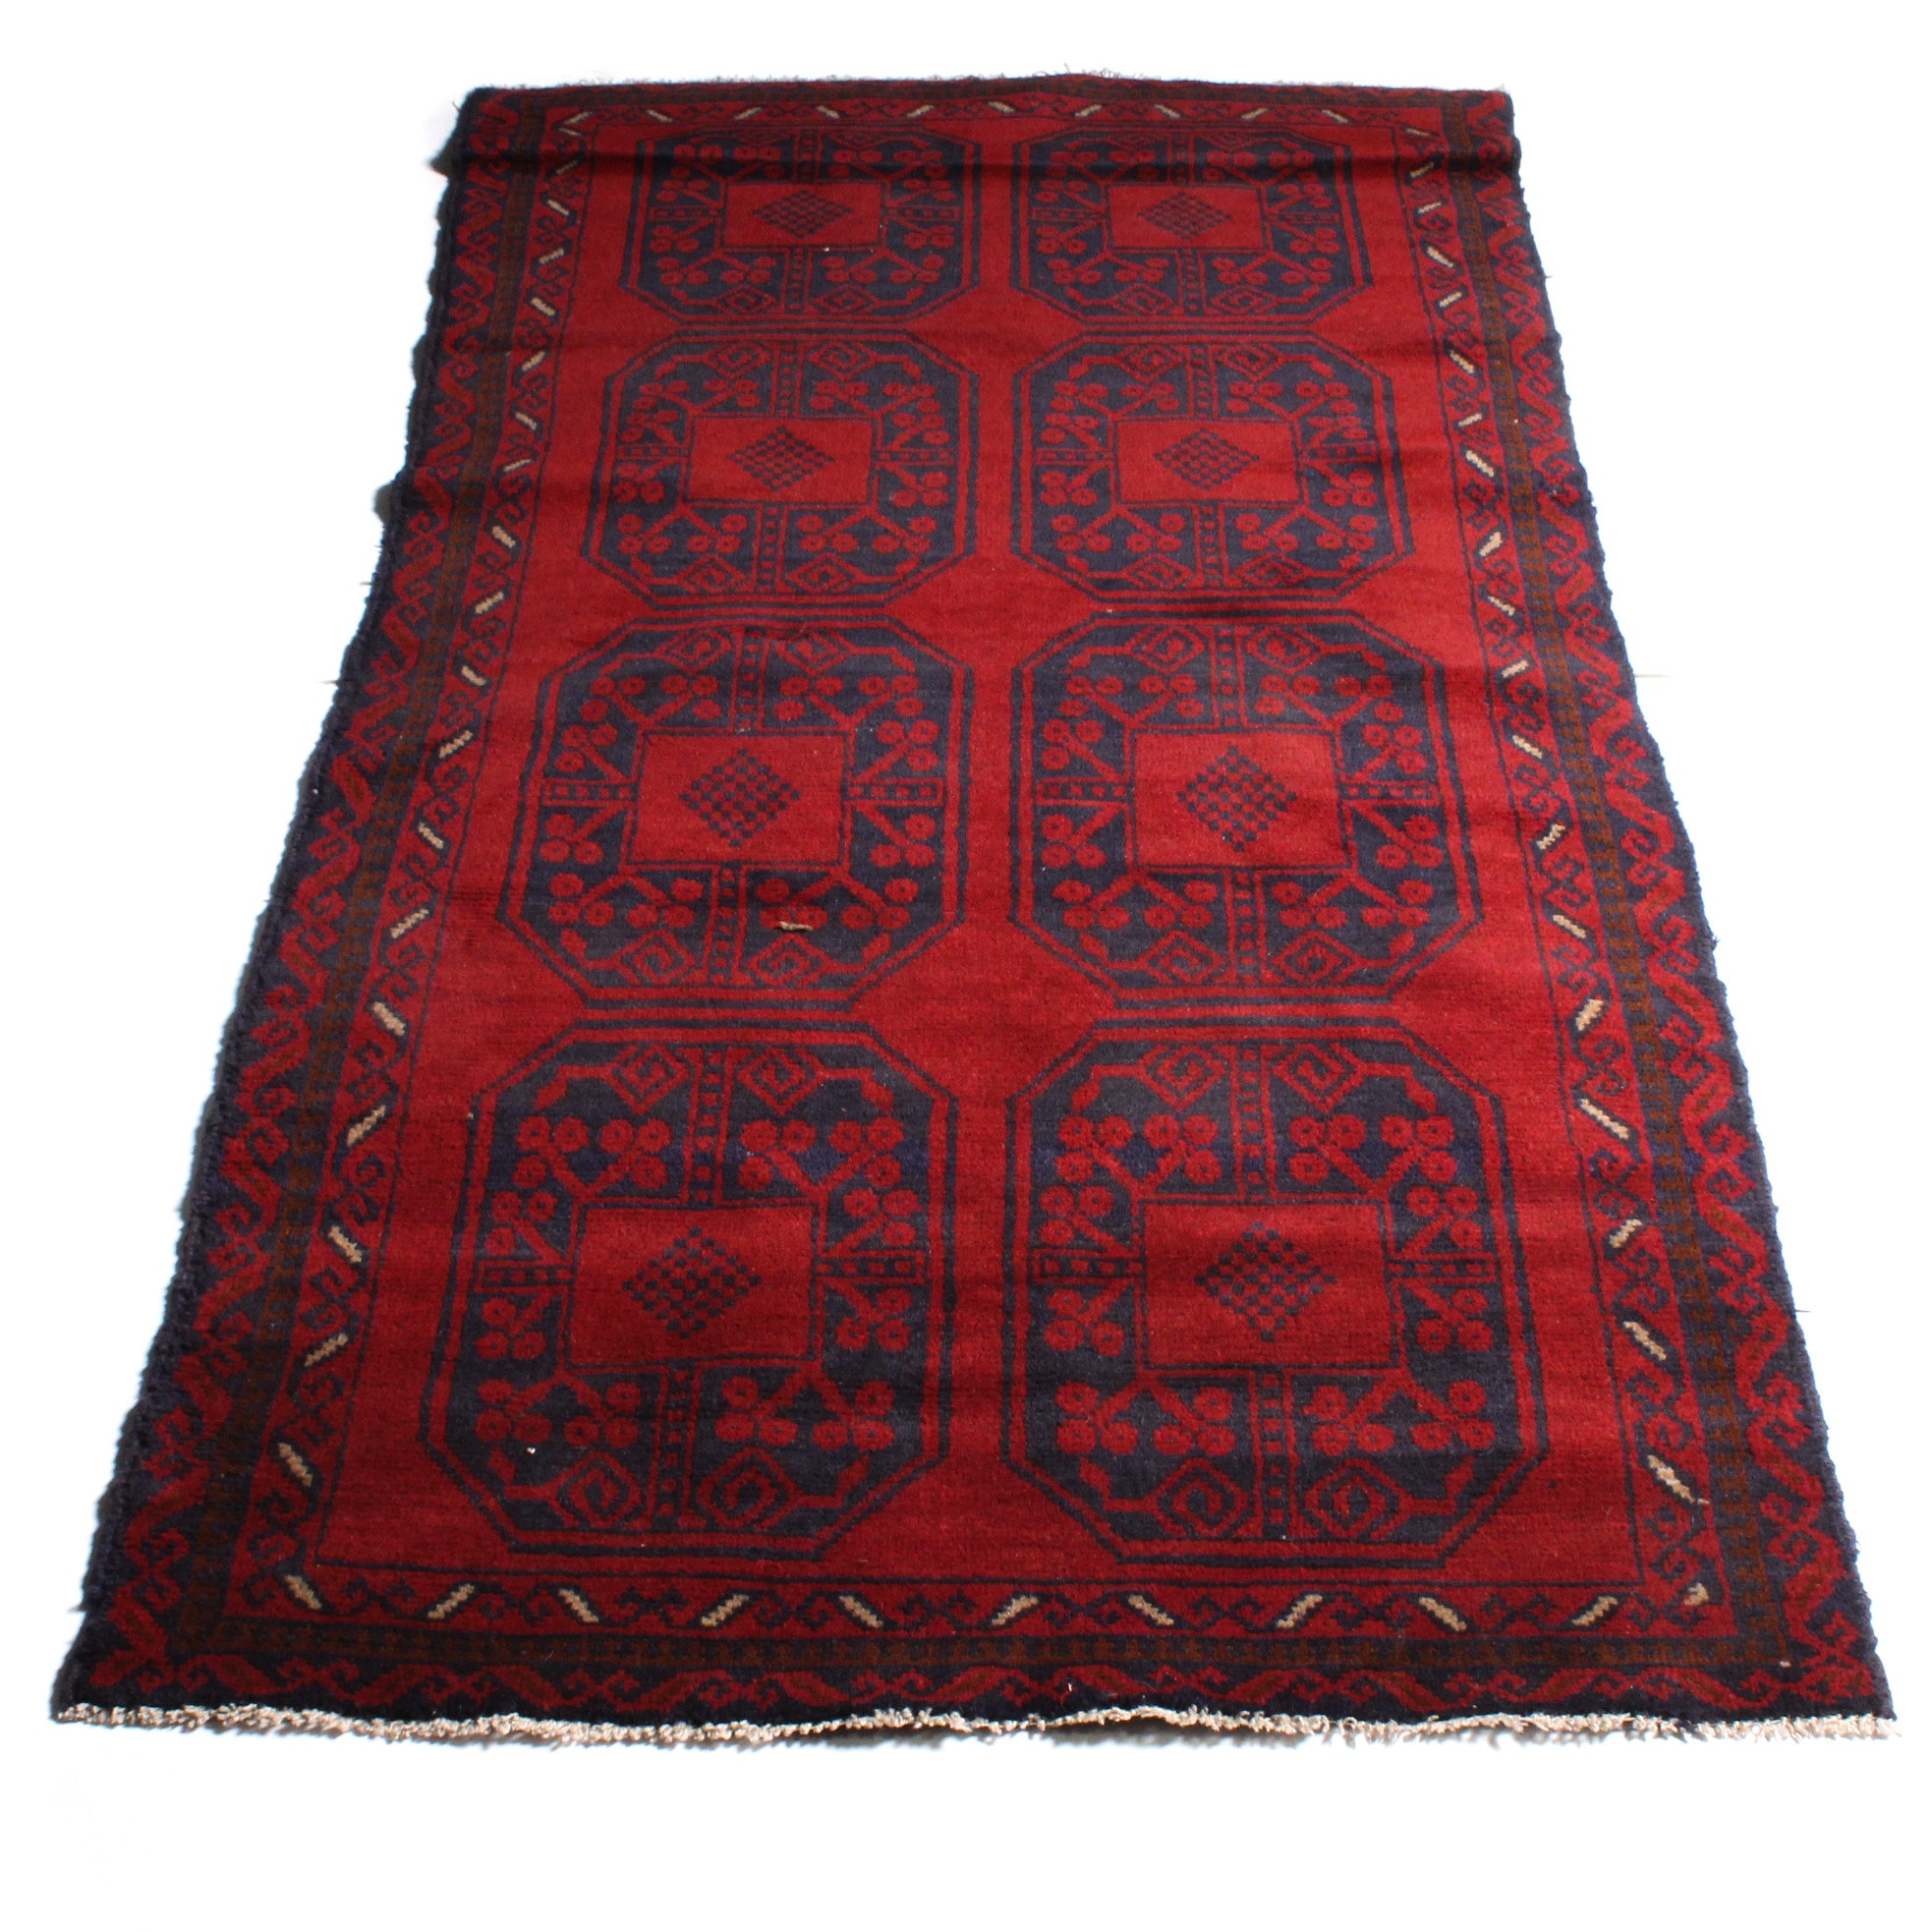 3'4 x 6'1 Hand-Knotted Afghan Bahor Rug